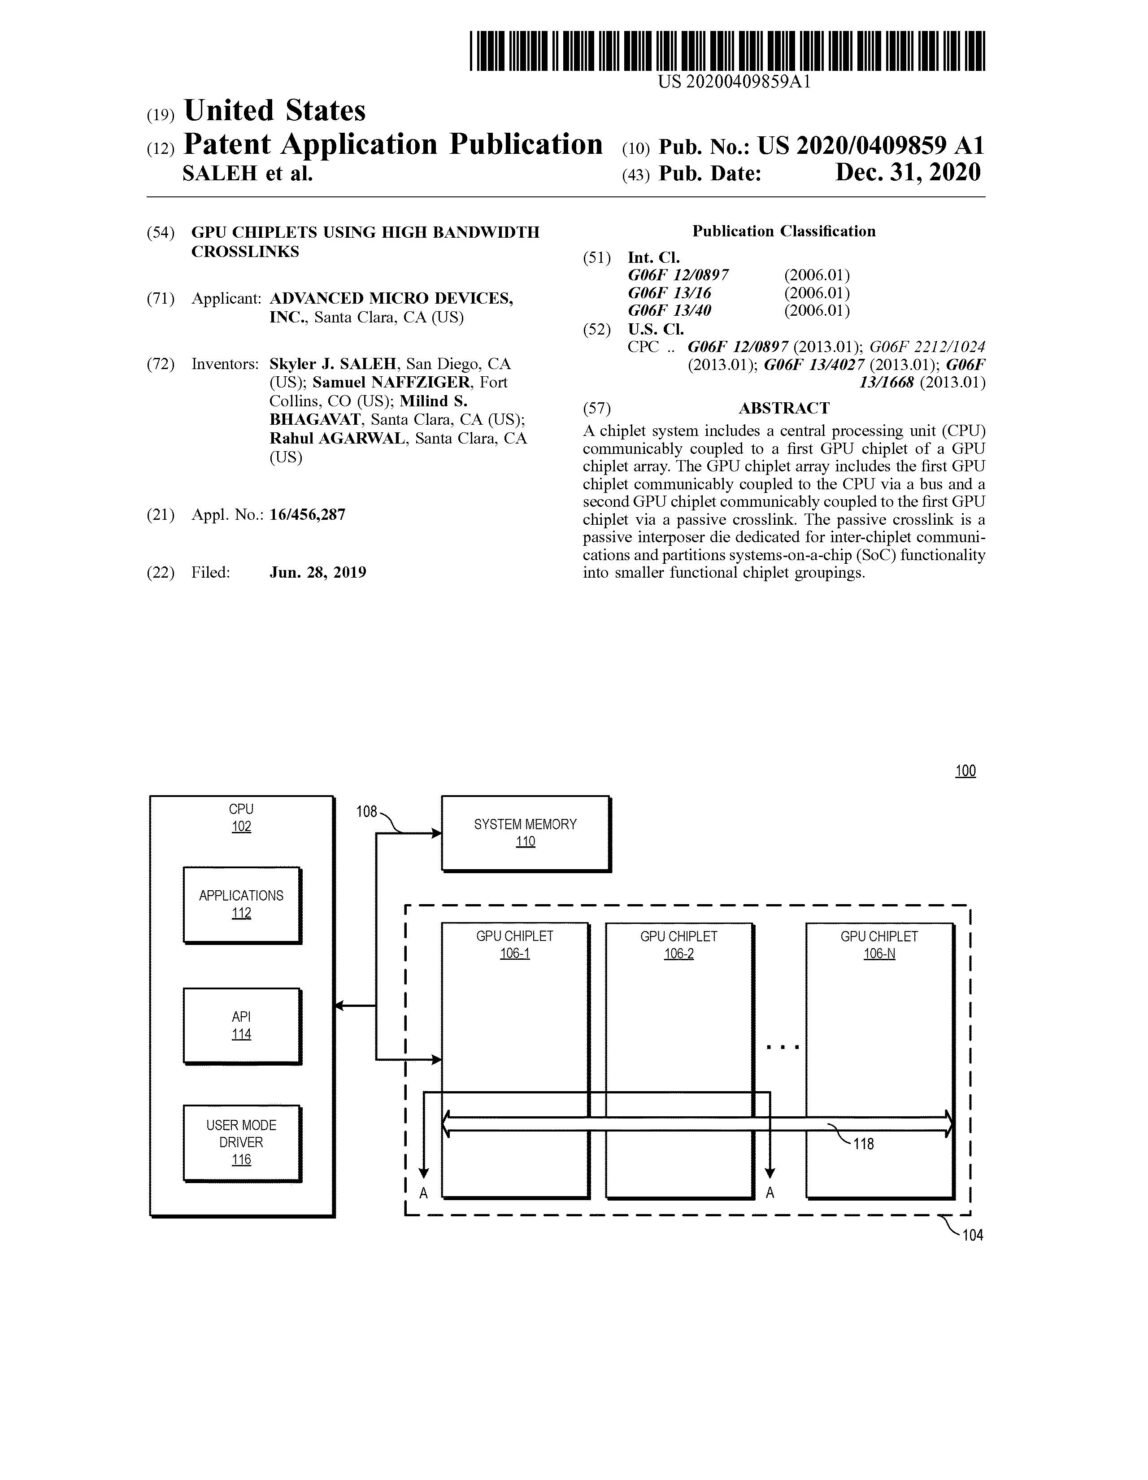 us20200409859a1-page-001